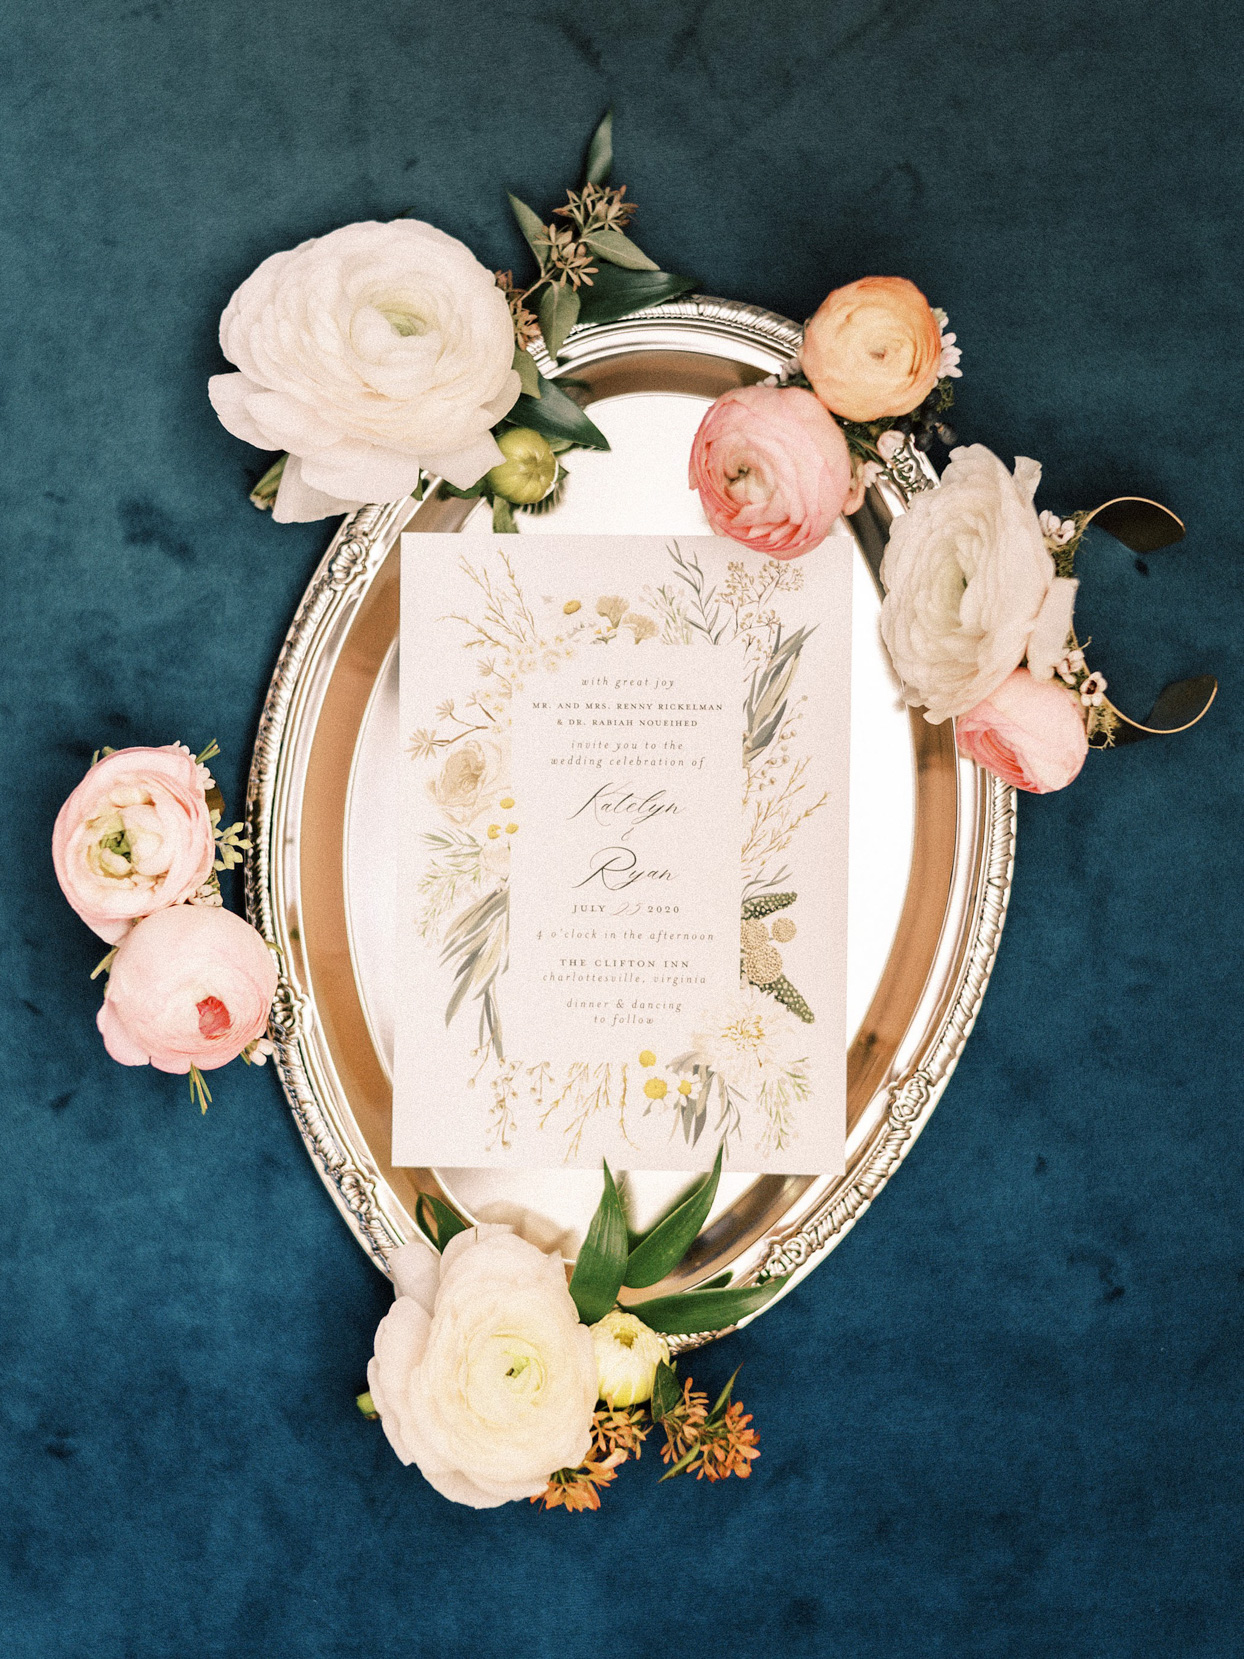 silver tray with floral boutonnières and elegant invitations